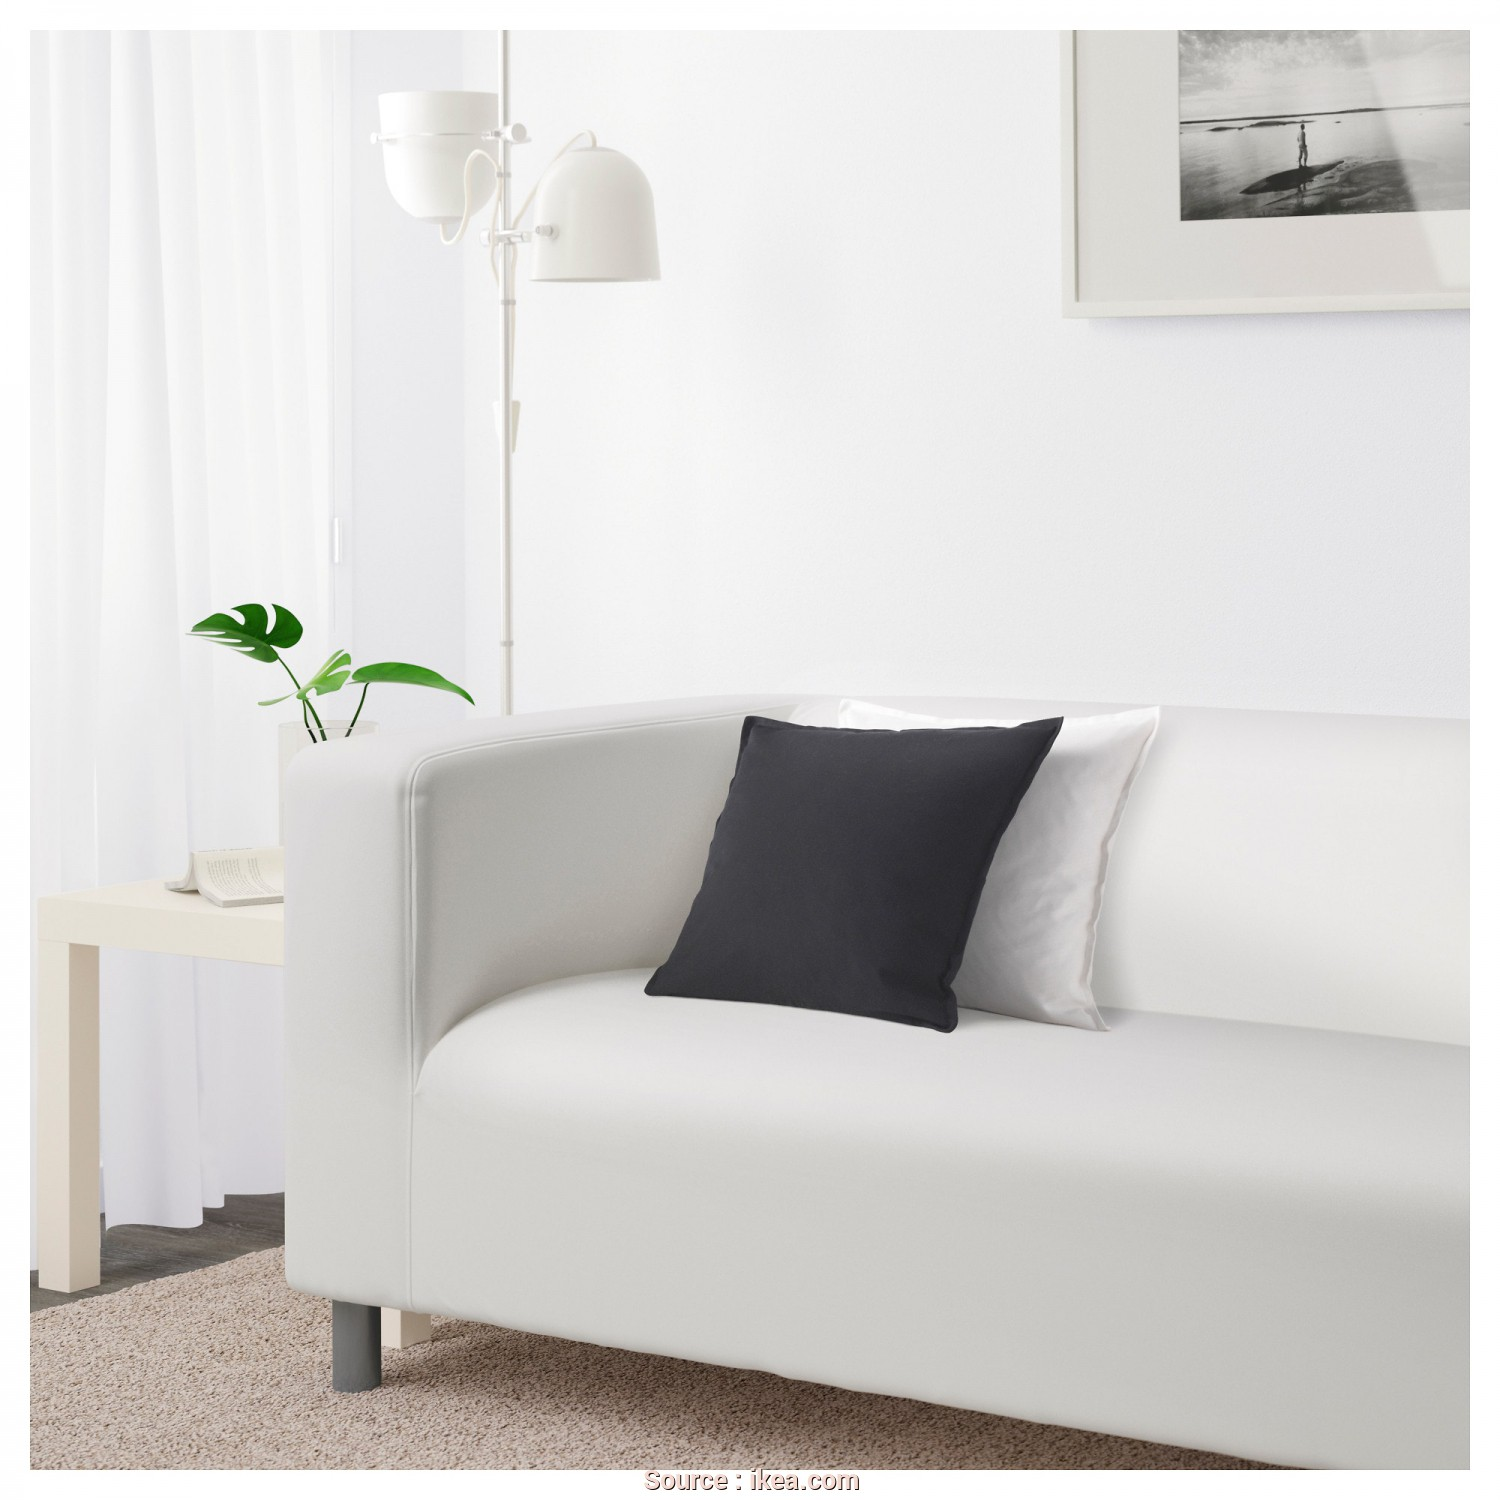 Ikea Klippan White, Bello IKEA KLIPPAN 2-Seat Sofa, Cover Is Easy To Keep Clean Since It Is